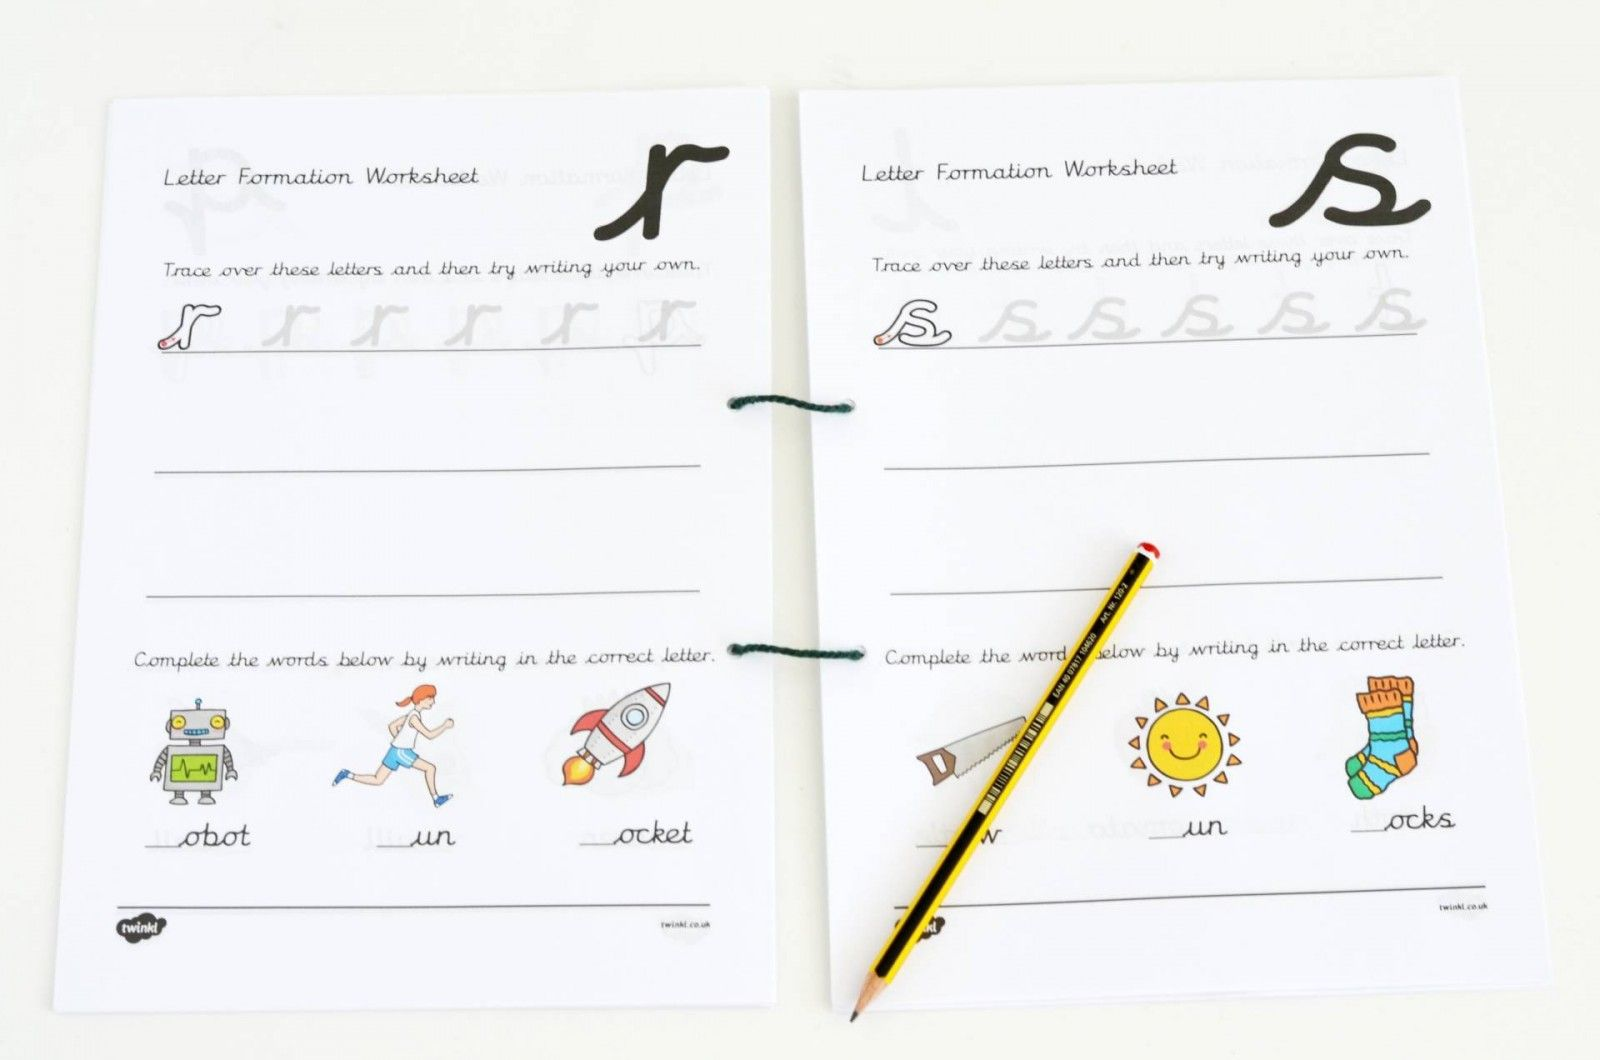 Letter Formation Booklet From Twinkl